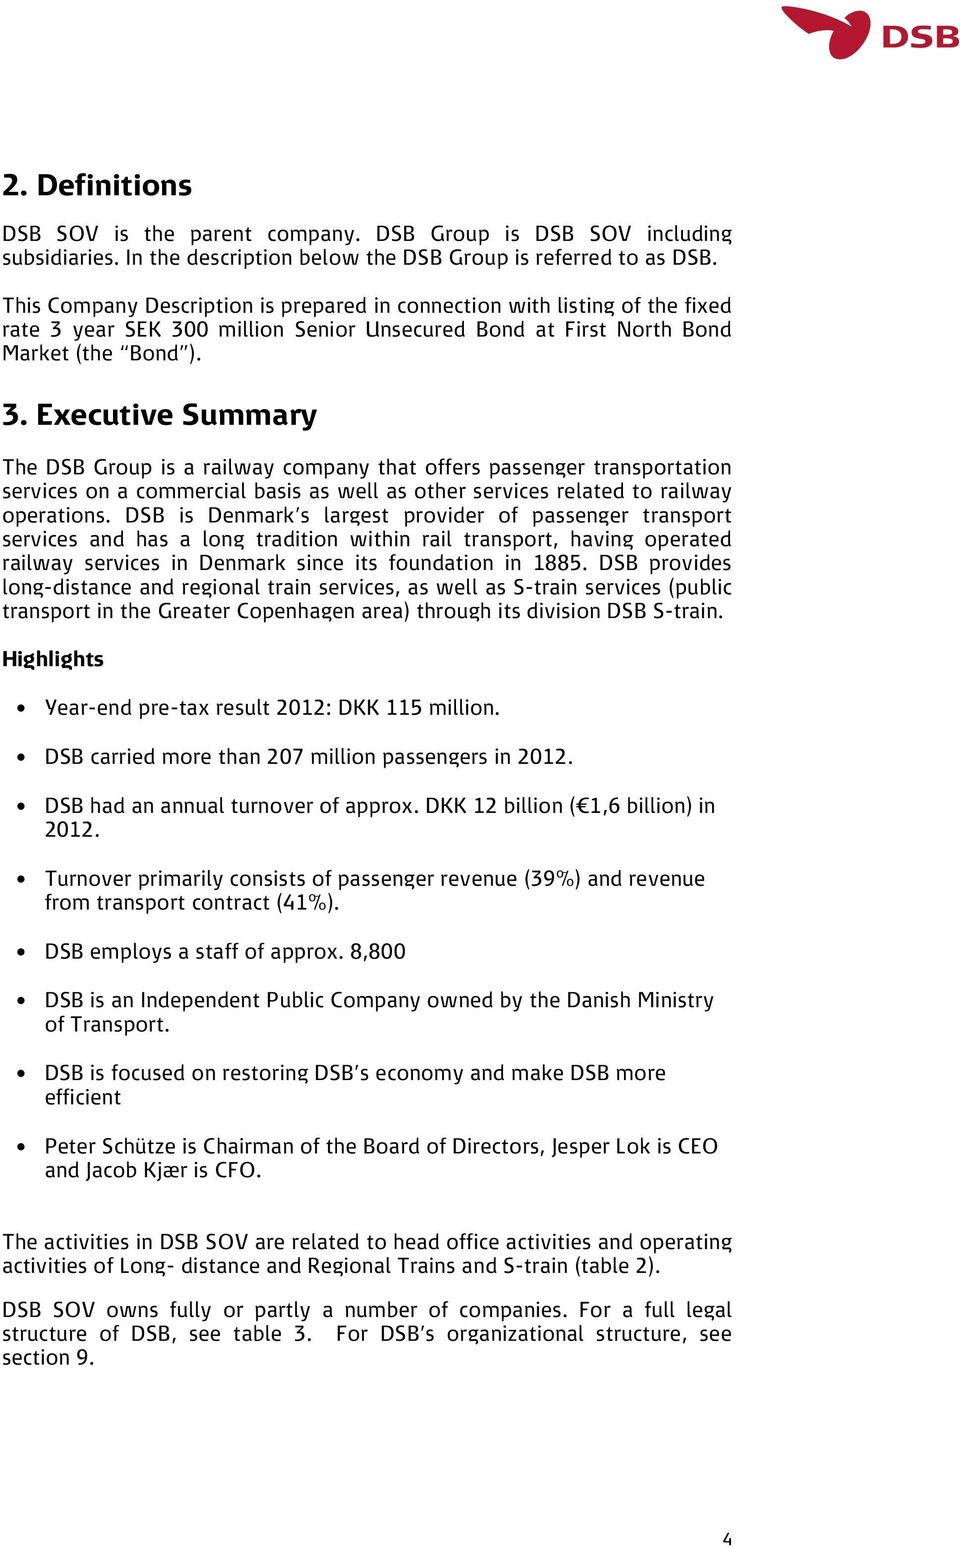 year SEK 300 million Senior Unsecured Bond at First North Bond Market (the Bond ). 3. Executive Summary The DSB Group is a railway company that offers passenger transportation services on a commercial basis as well as other services related to railway operations.